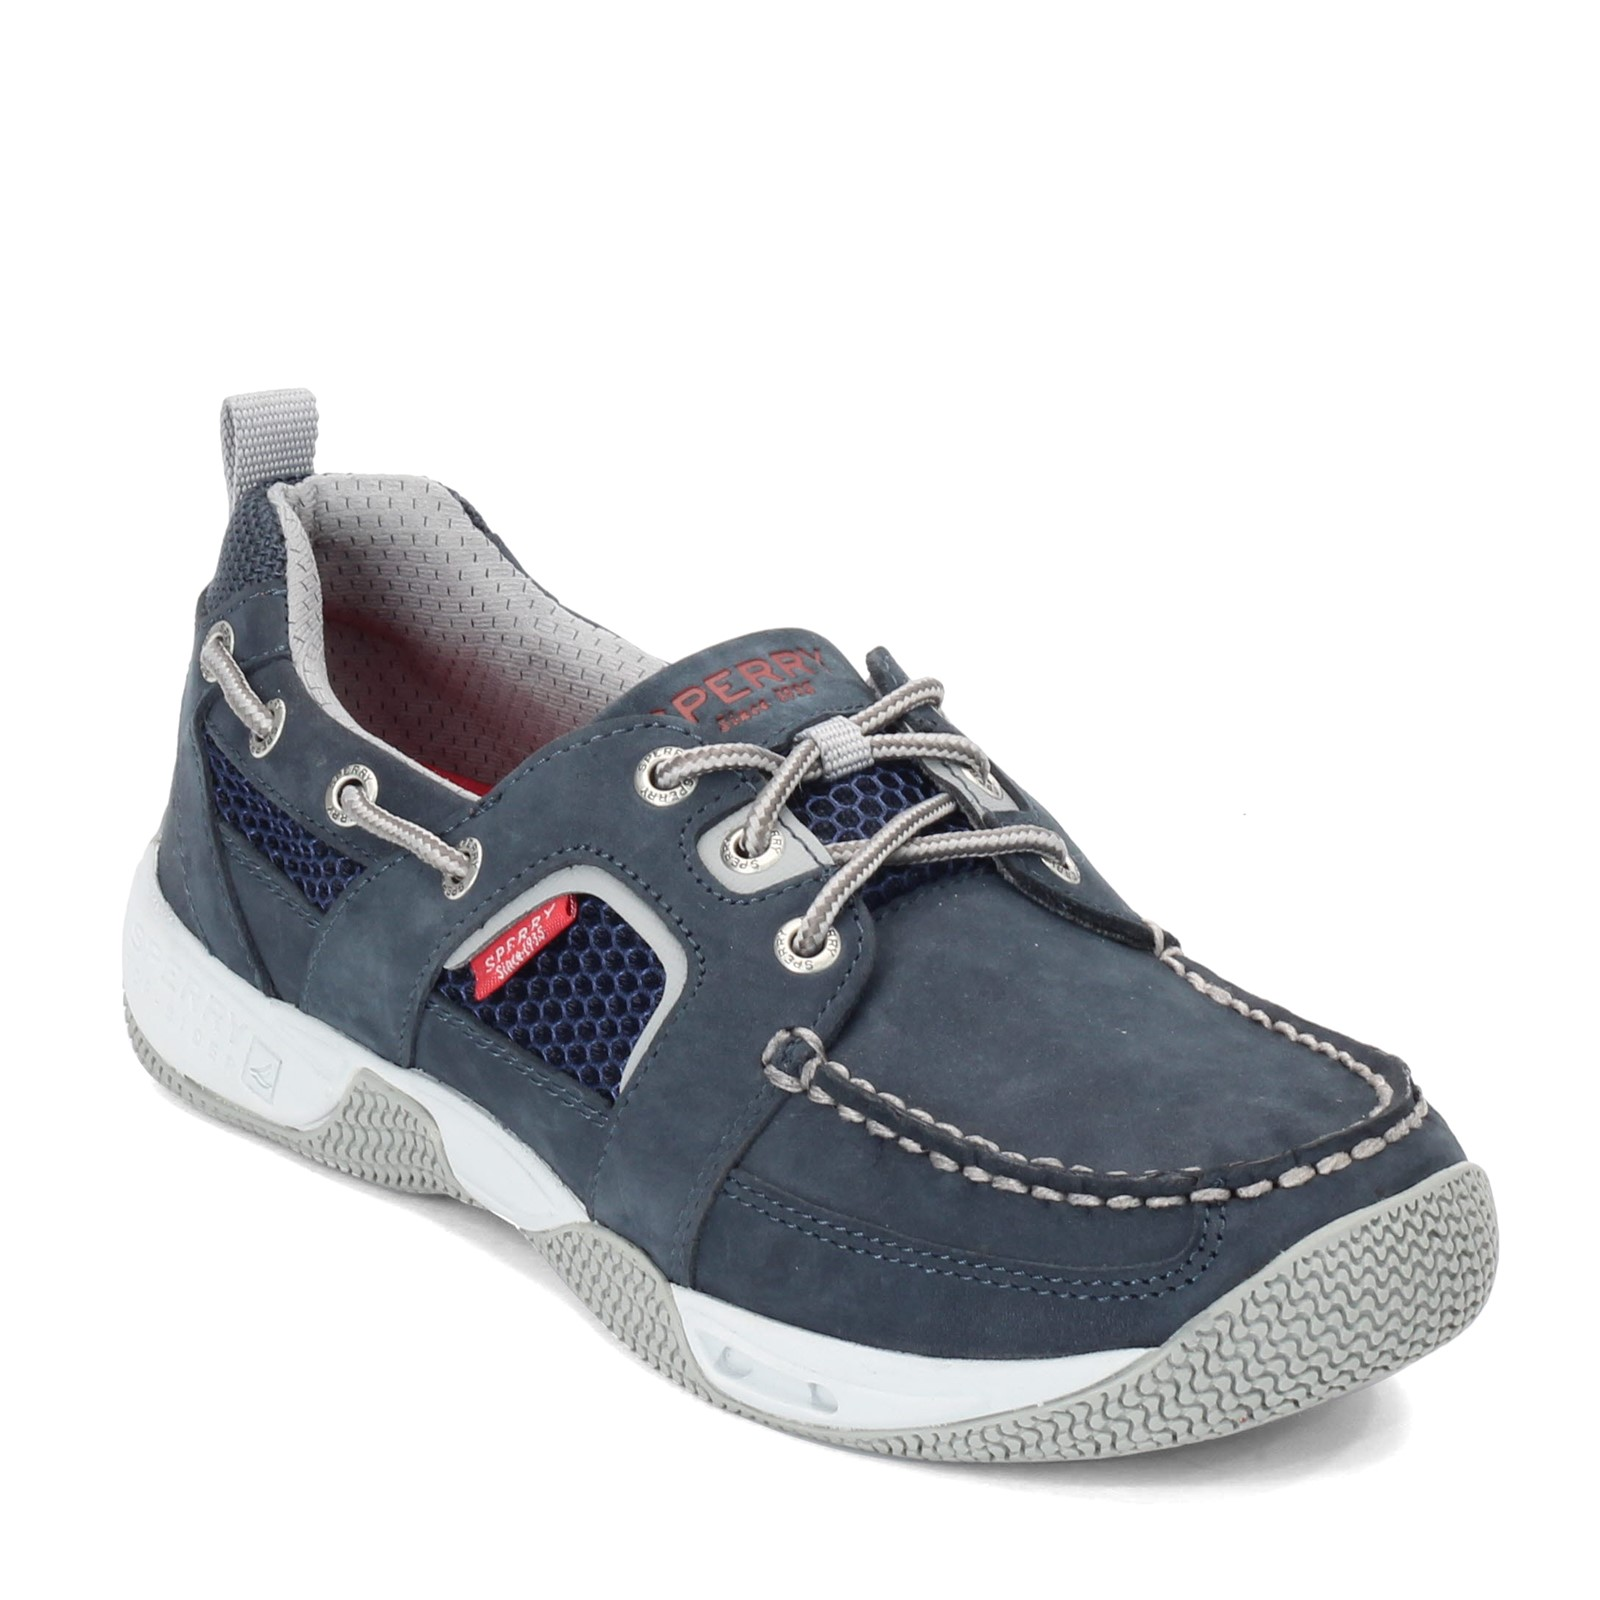 Men's Sperry, Sea Kite Athletic Boat Shoe